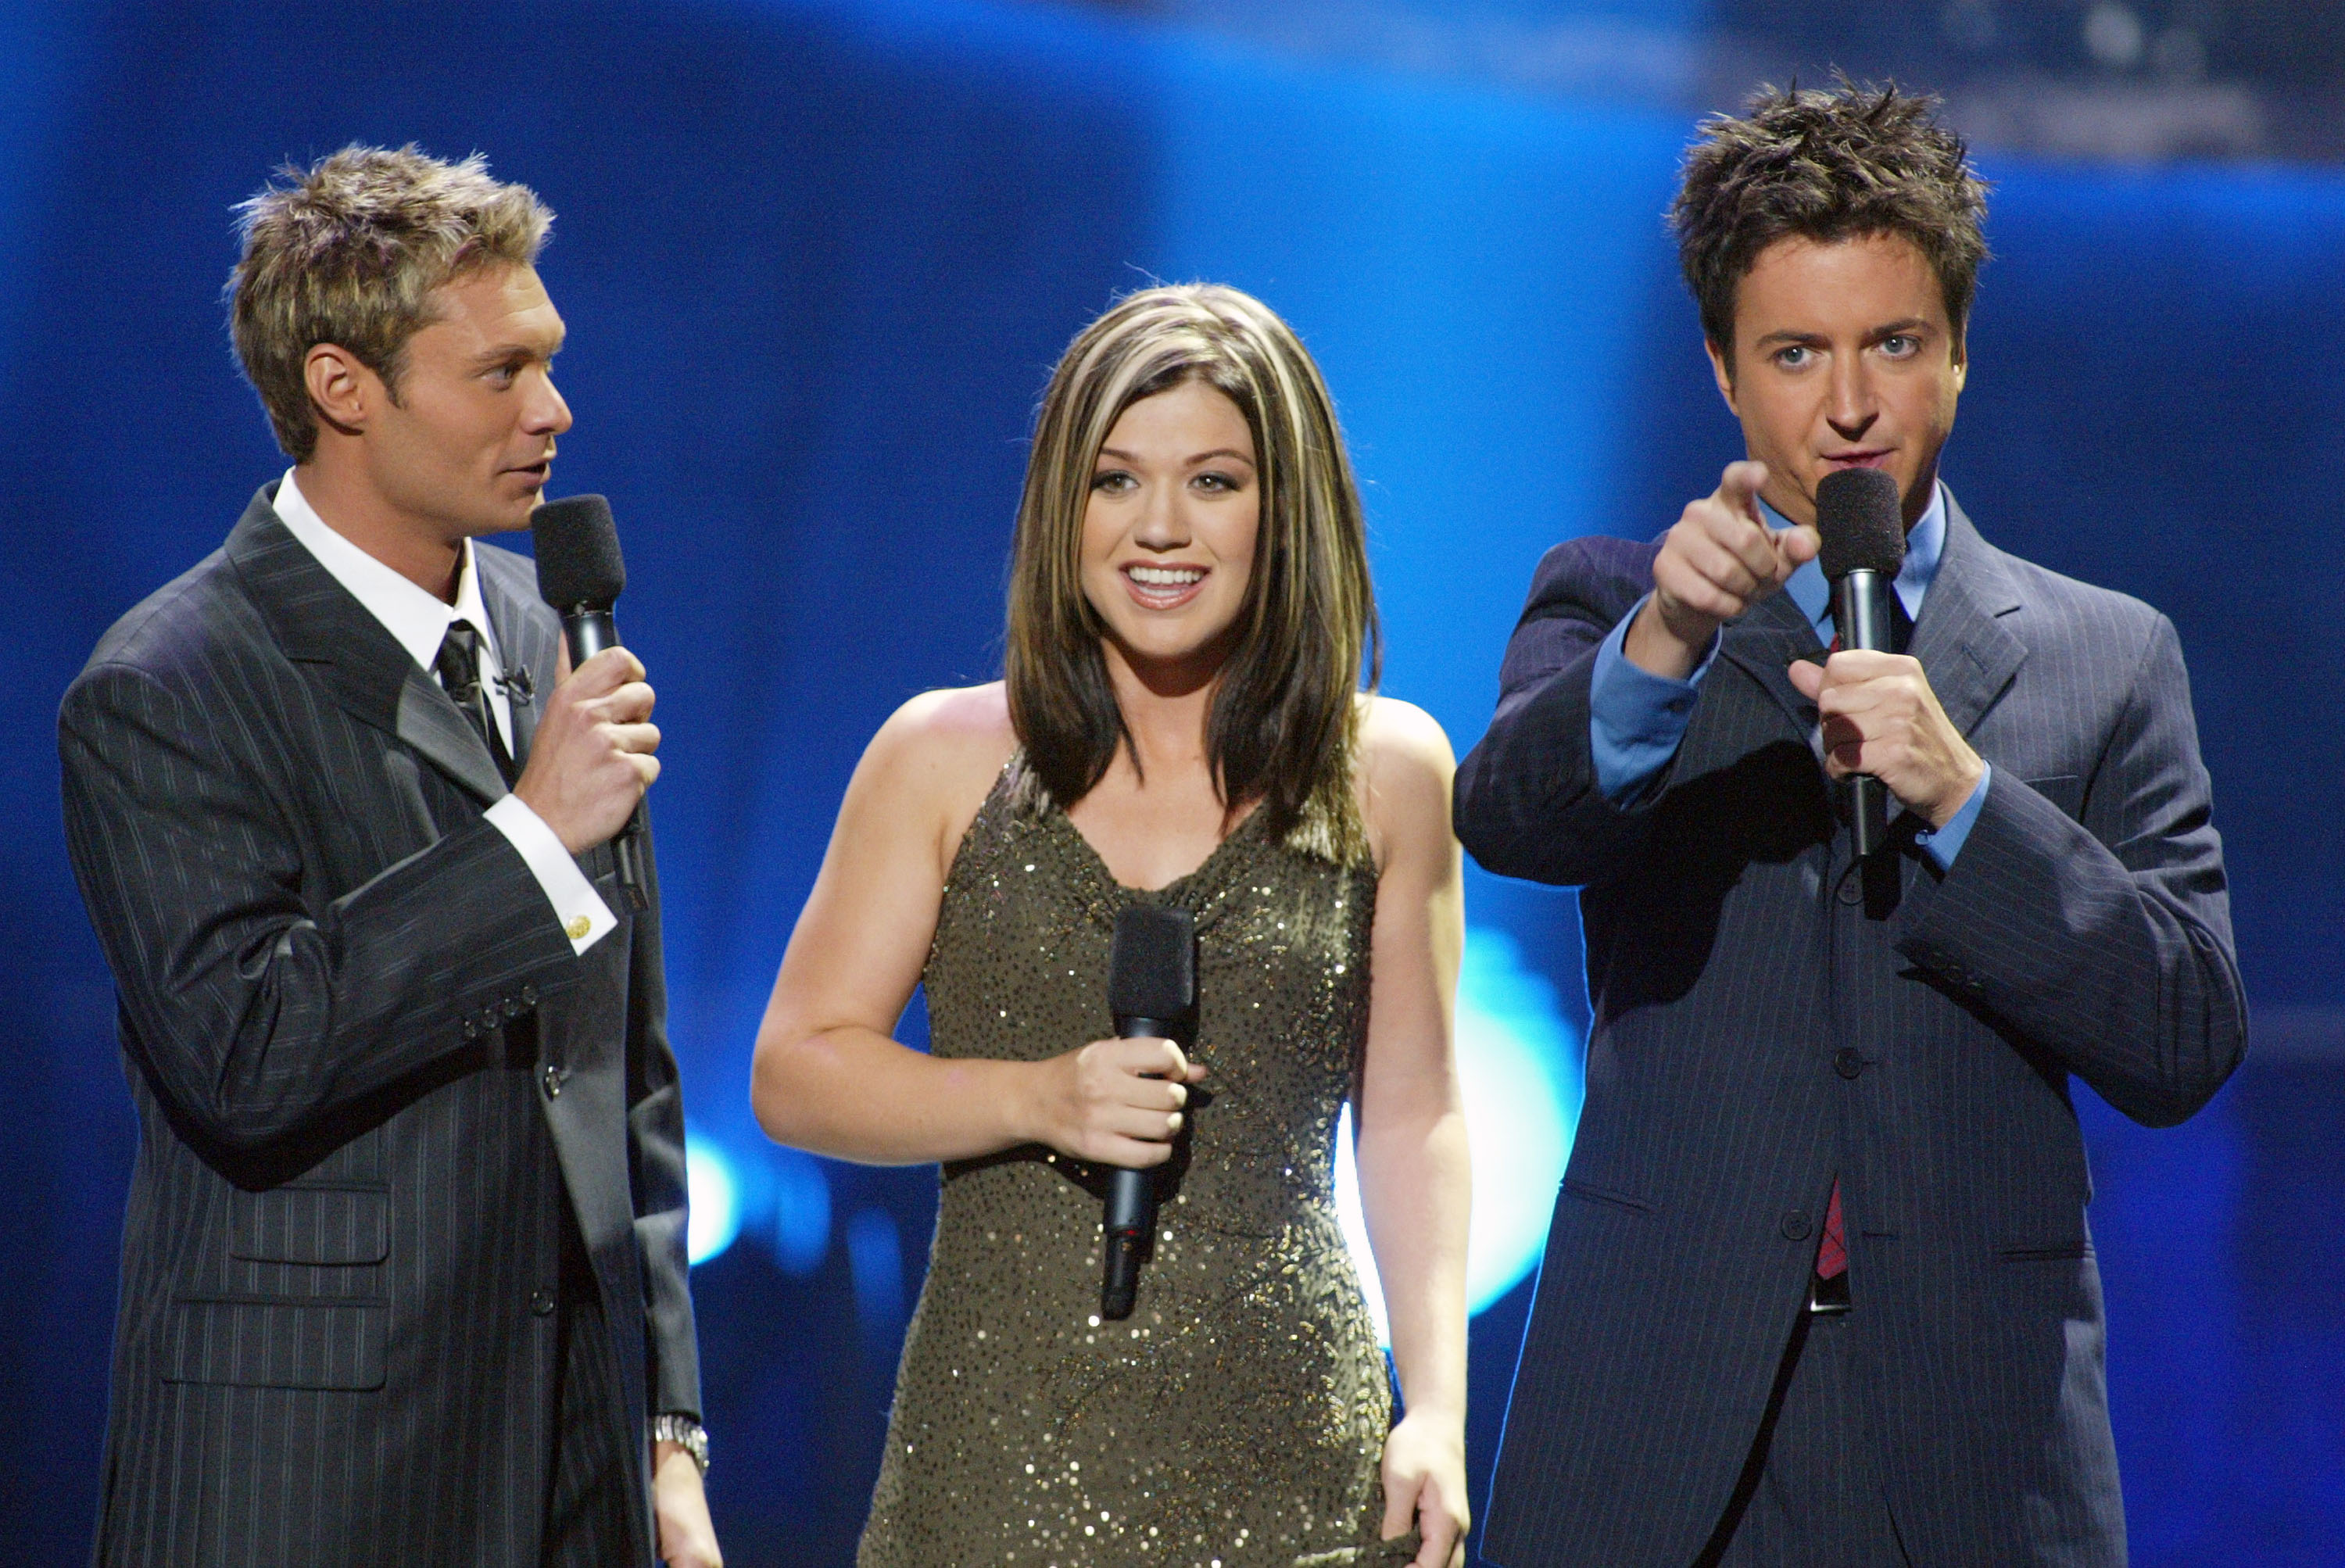 Ryan Seacrest, Kelly Clarkson and Brian Dunkleman at FOX-TV's 'American Idol' finals at the Kodak Theatre in Hollywood, Ca. Tuesday, Sept. 3, 2002. (Kevin Winter/Getty Images)